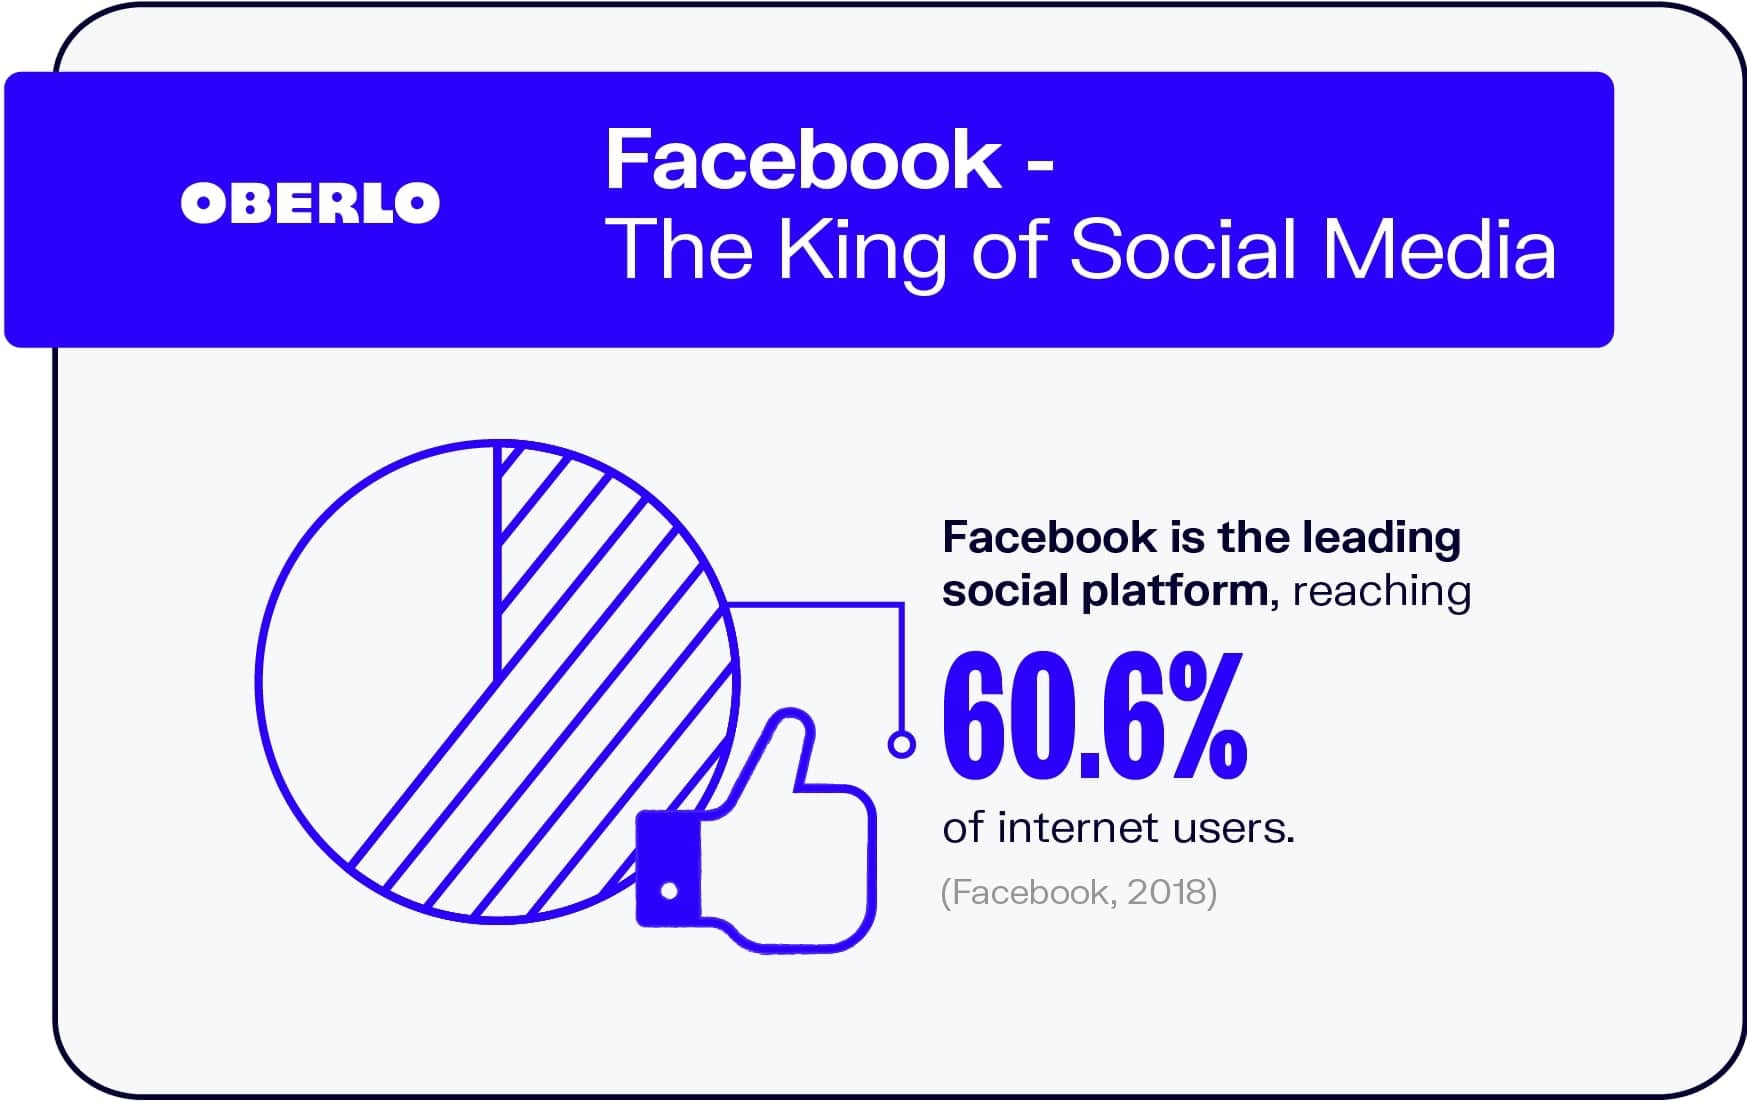 Facebook – The King of Social Media